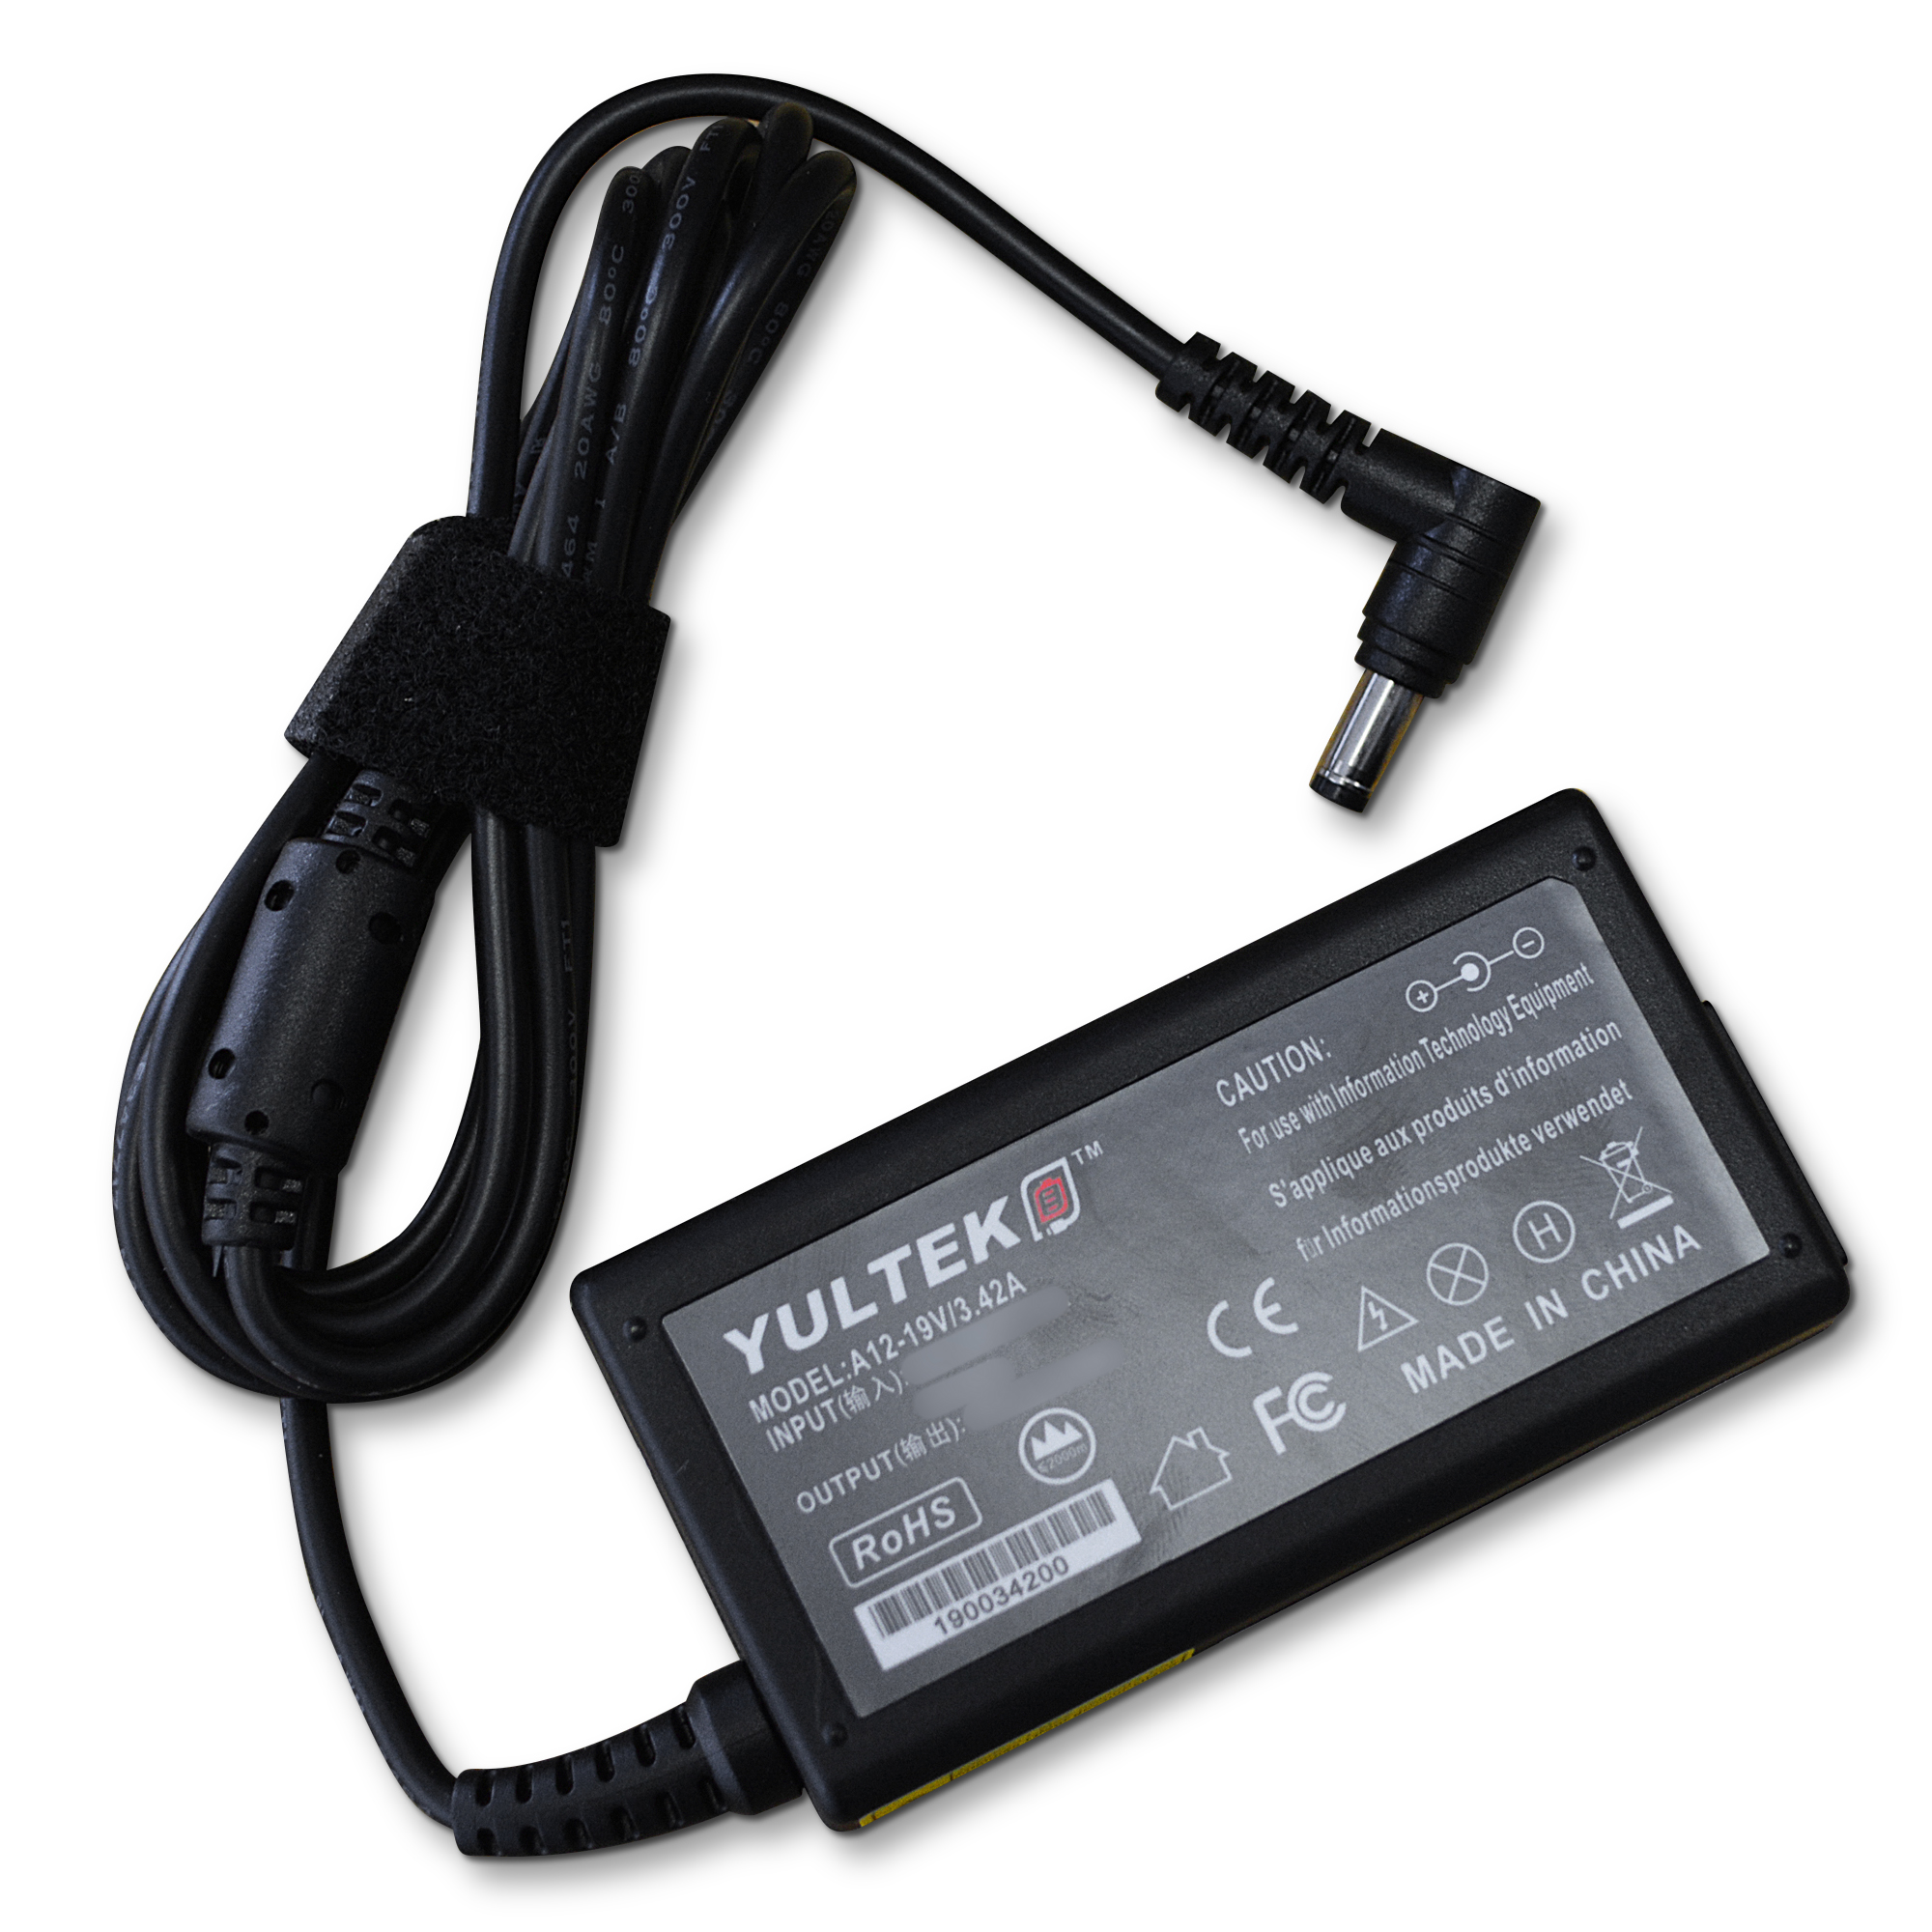 Toshiba Satellite Pro L20 Laptop Charger